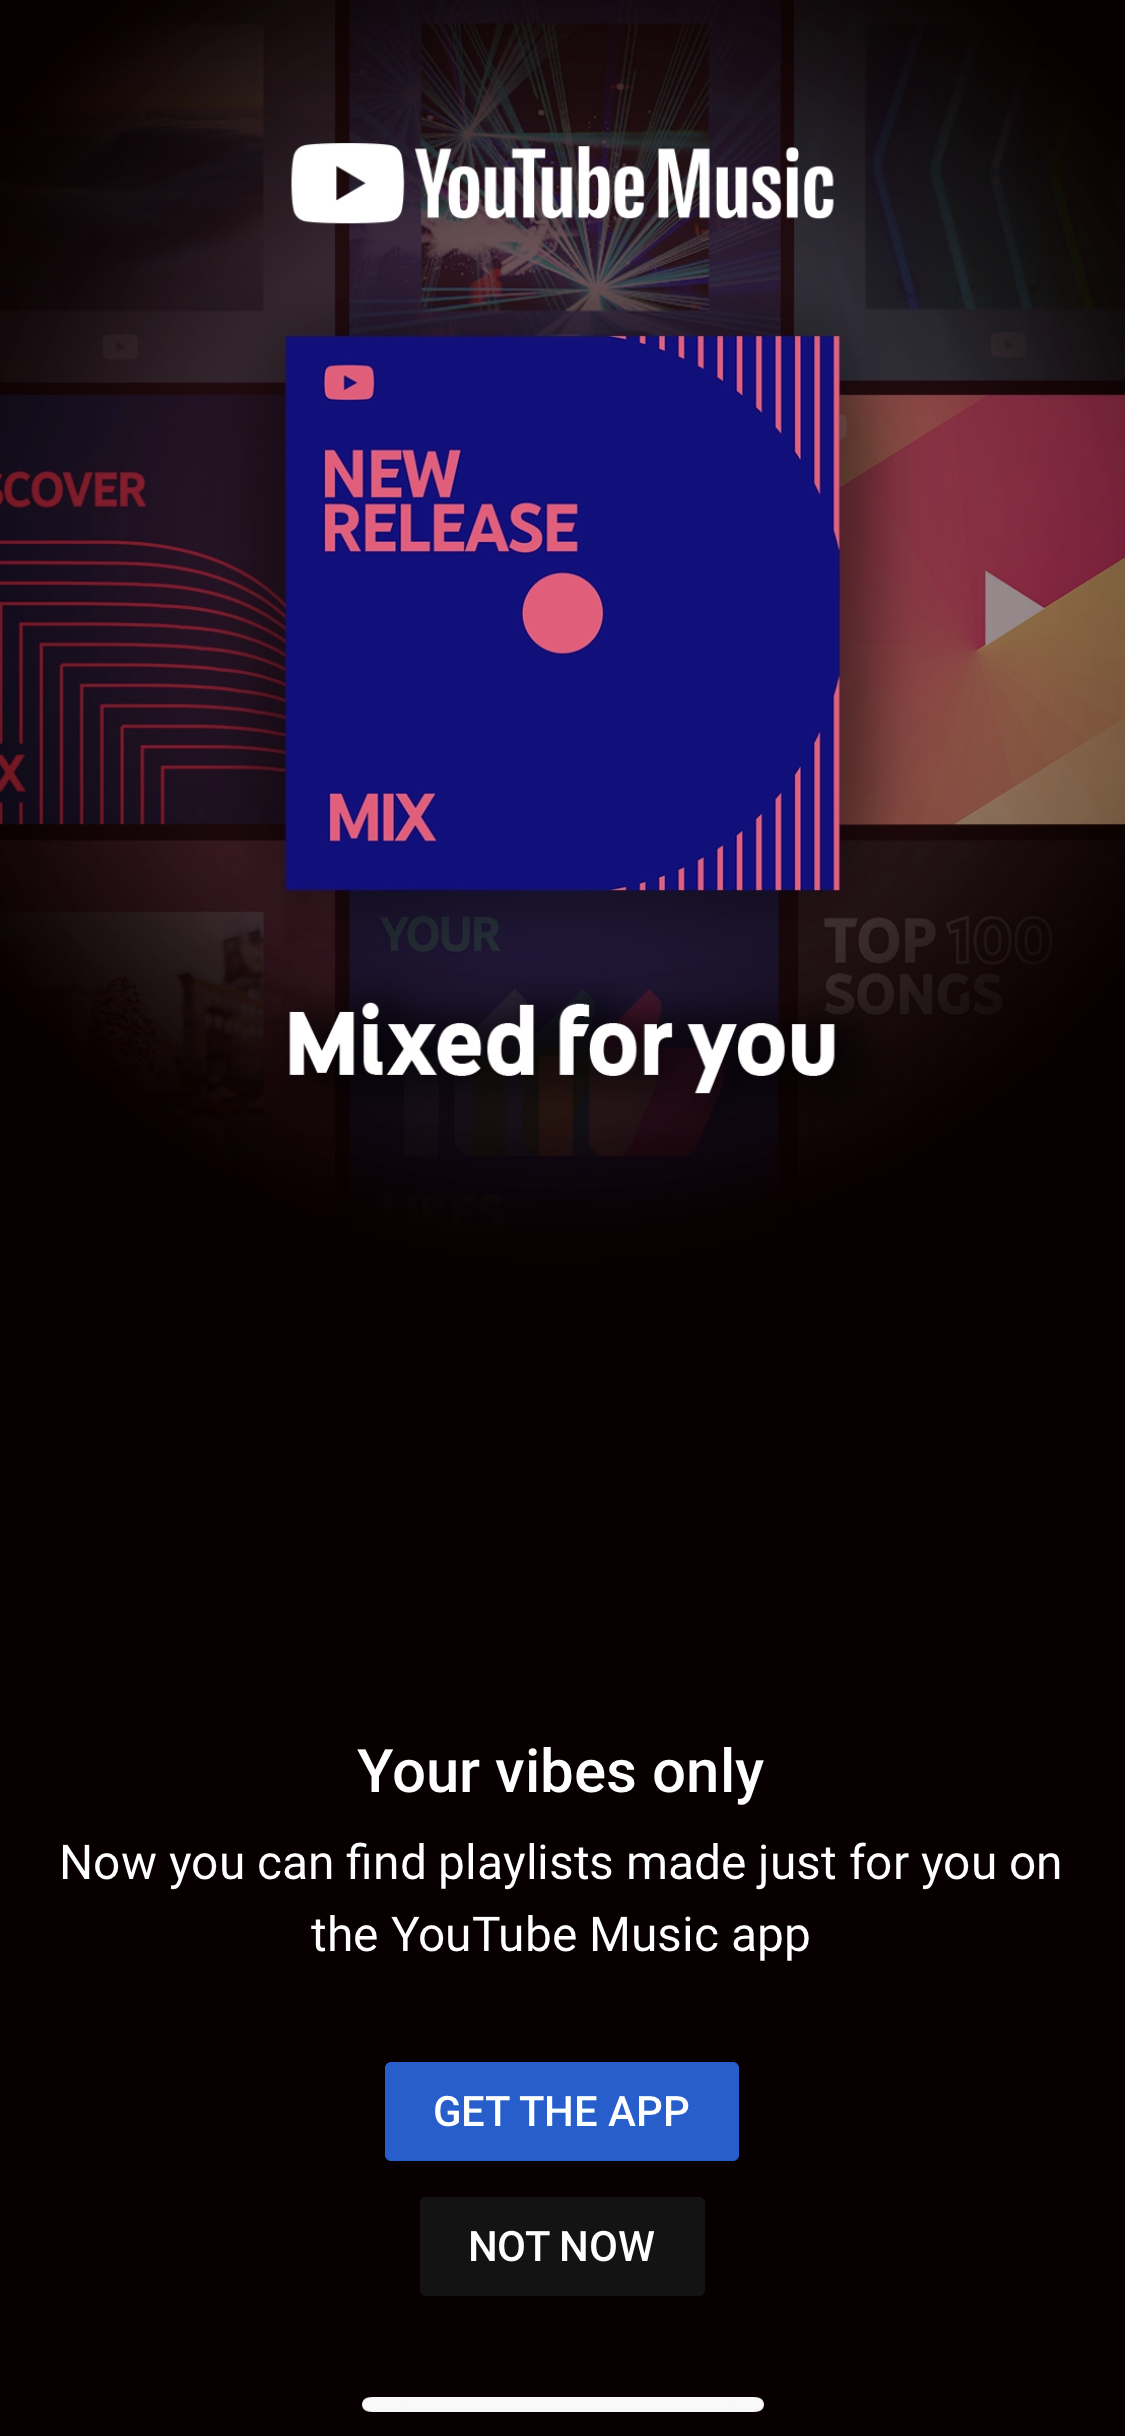 youtube music cross sell advertisement in youtube mobile app